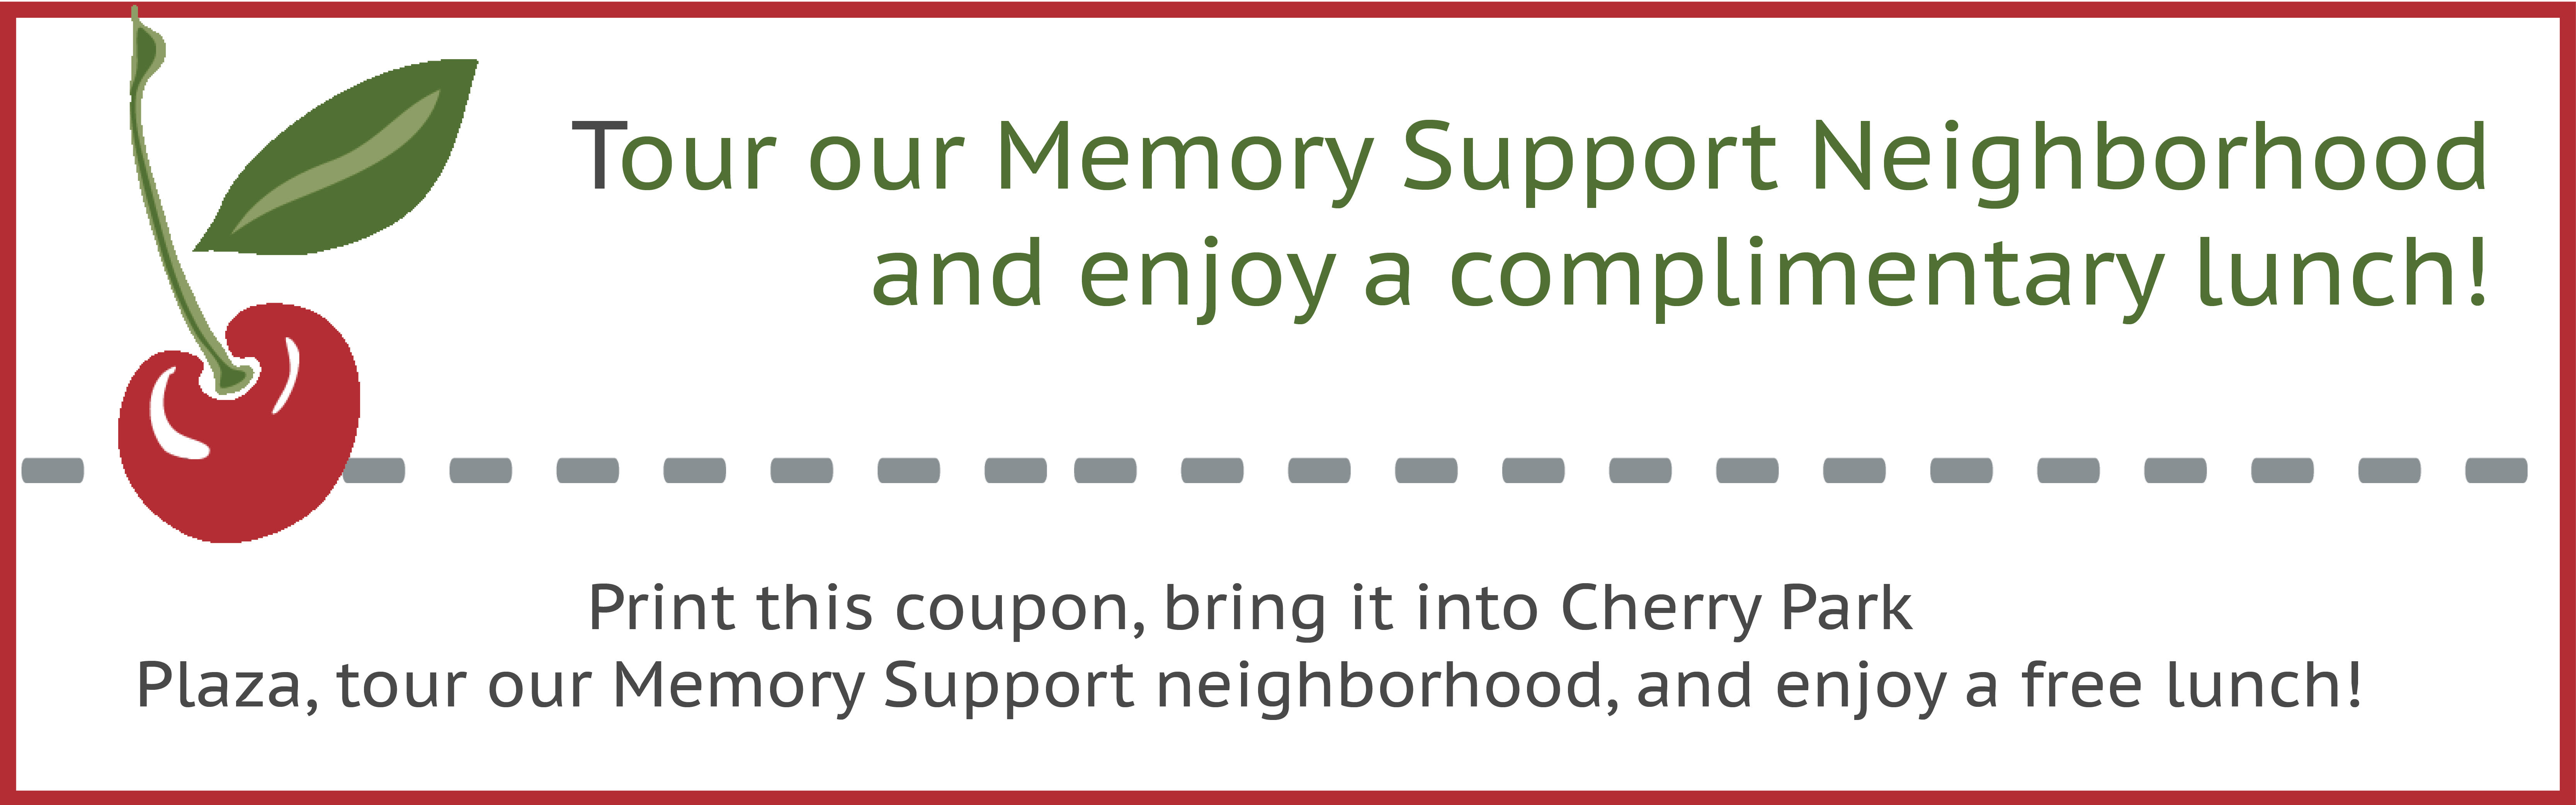 Tour our memory support neighborhood today and receive a complimentary lunch at Cherry Park Plaza in Troutdale, Oregon